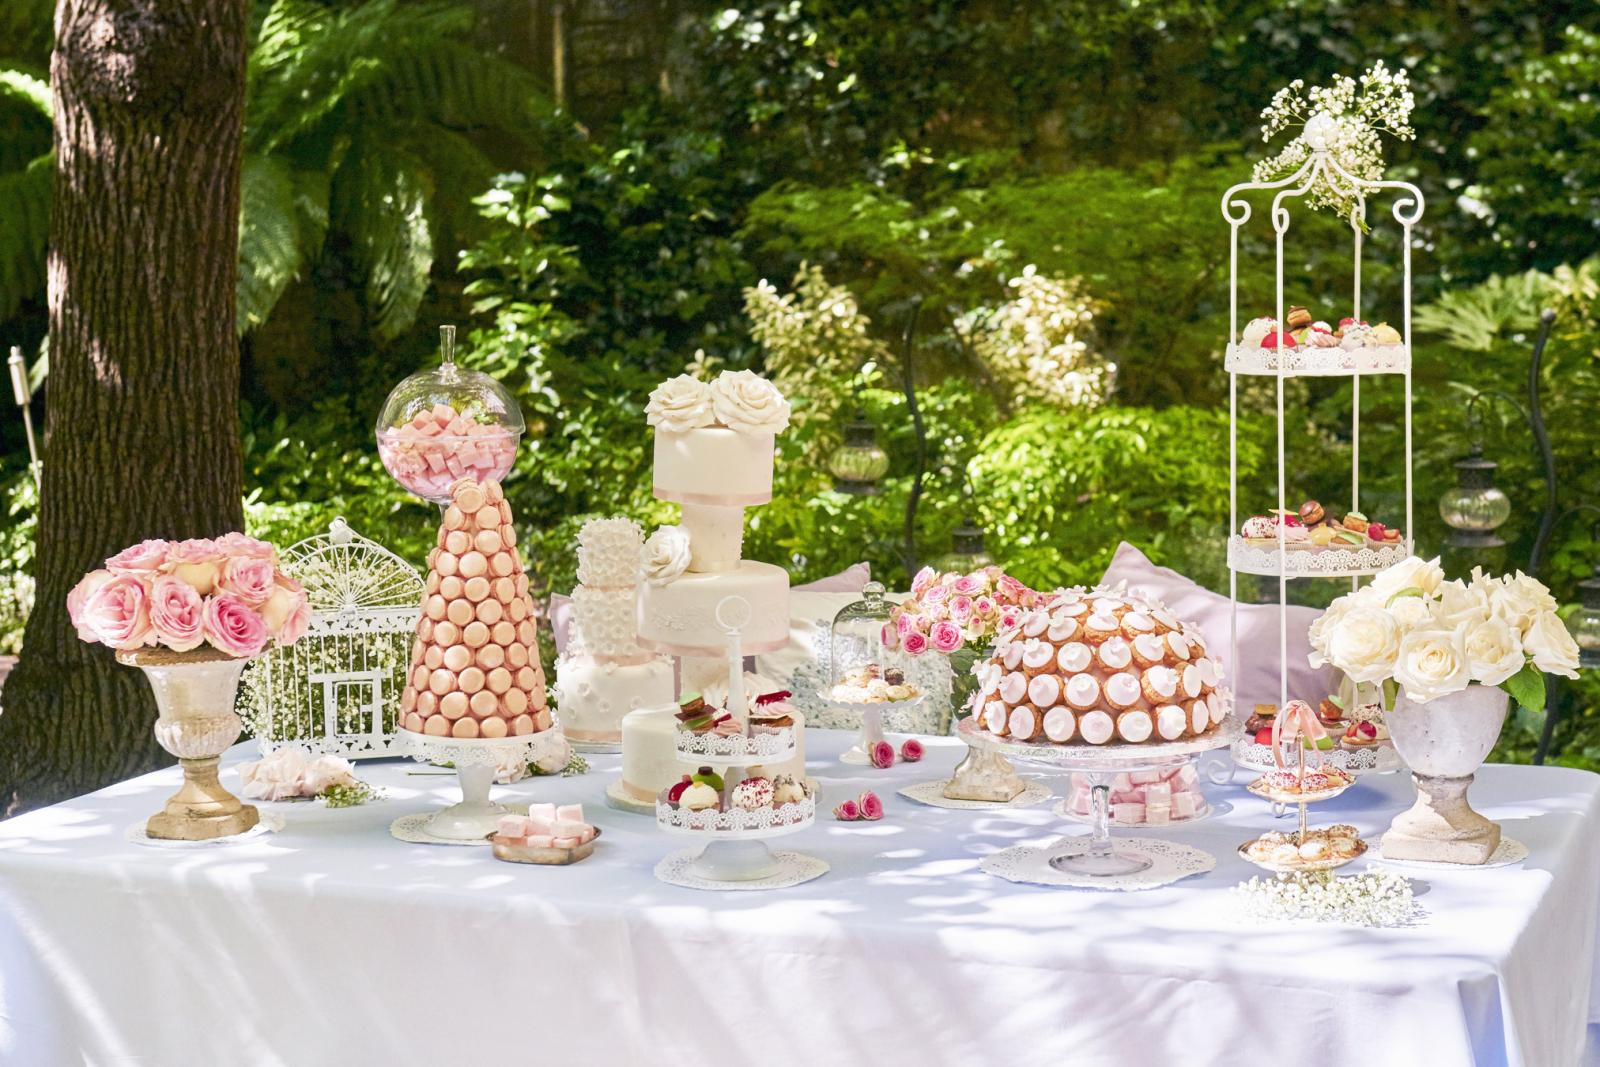 Guide to Wedding Cake Stands | LoveToKnow